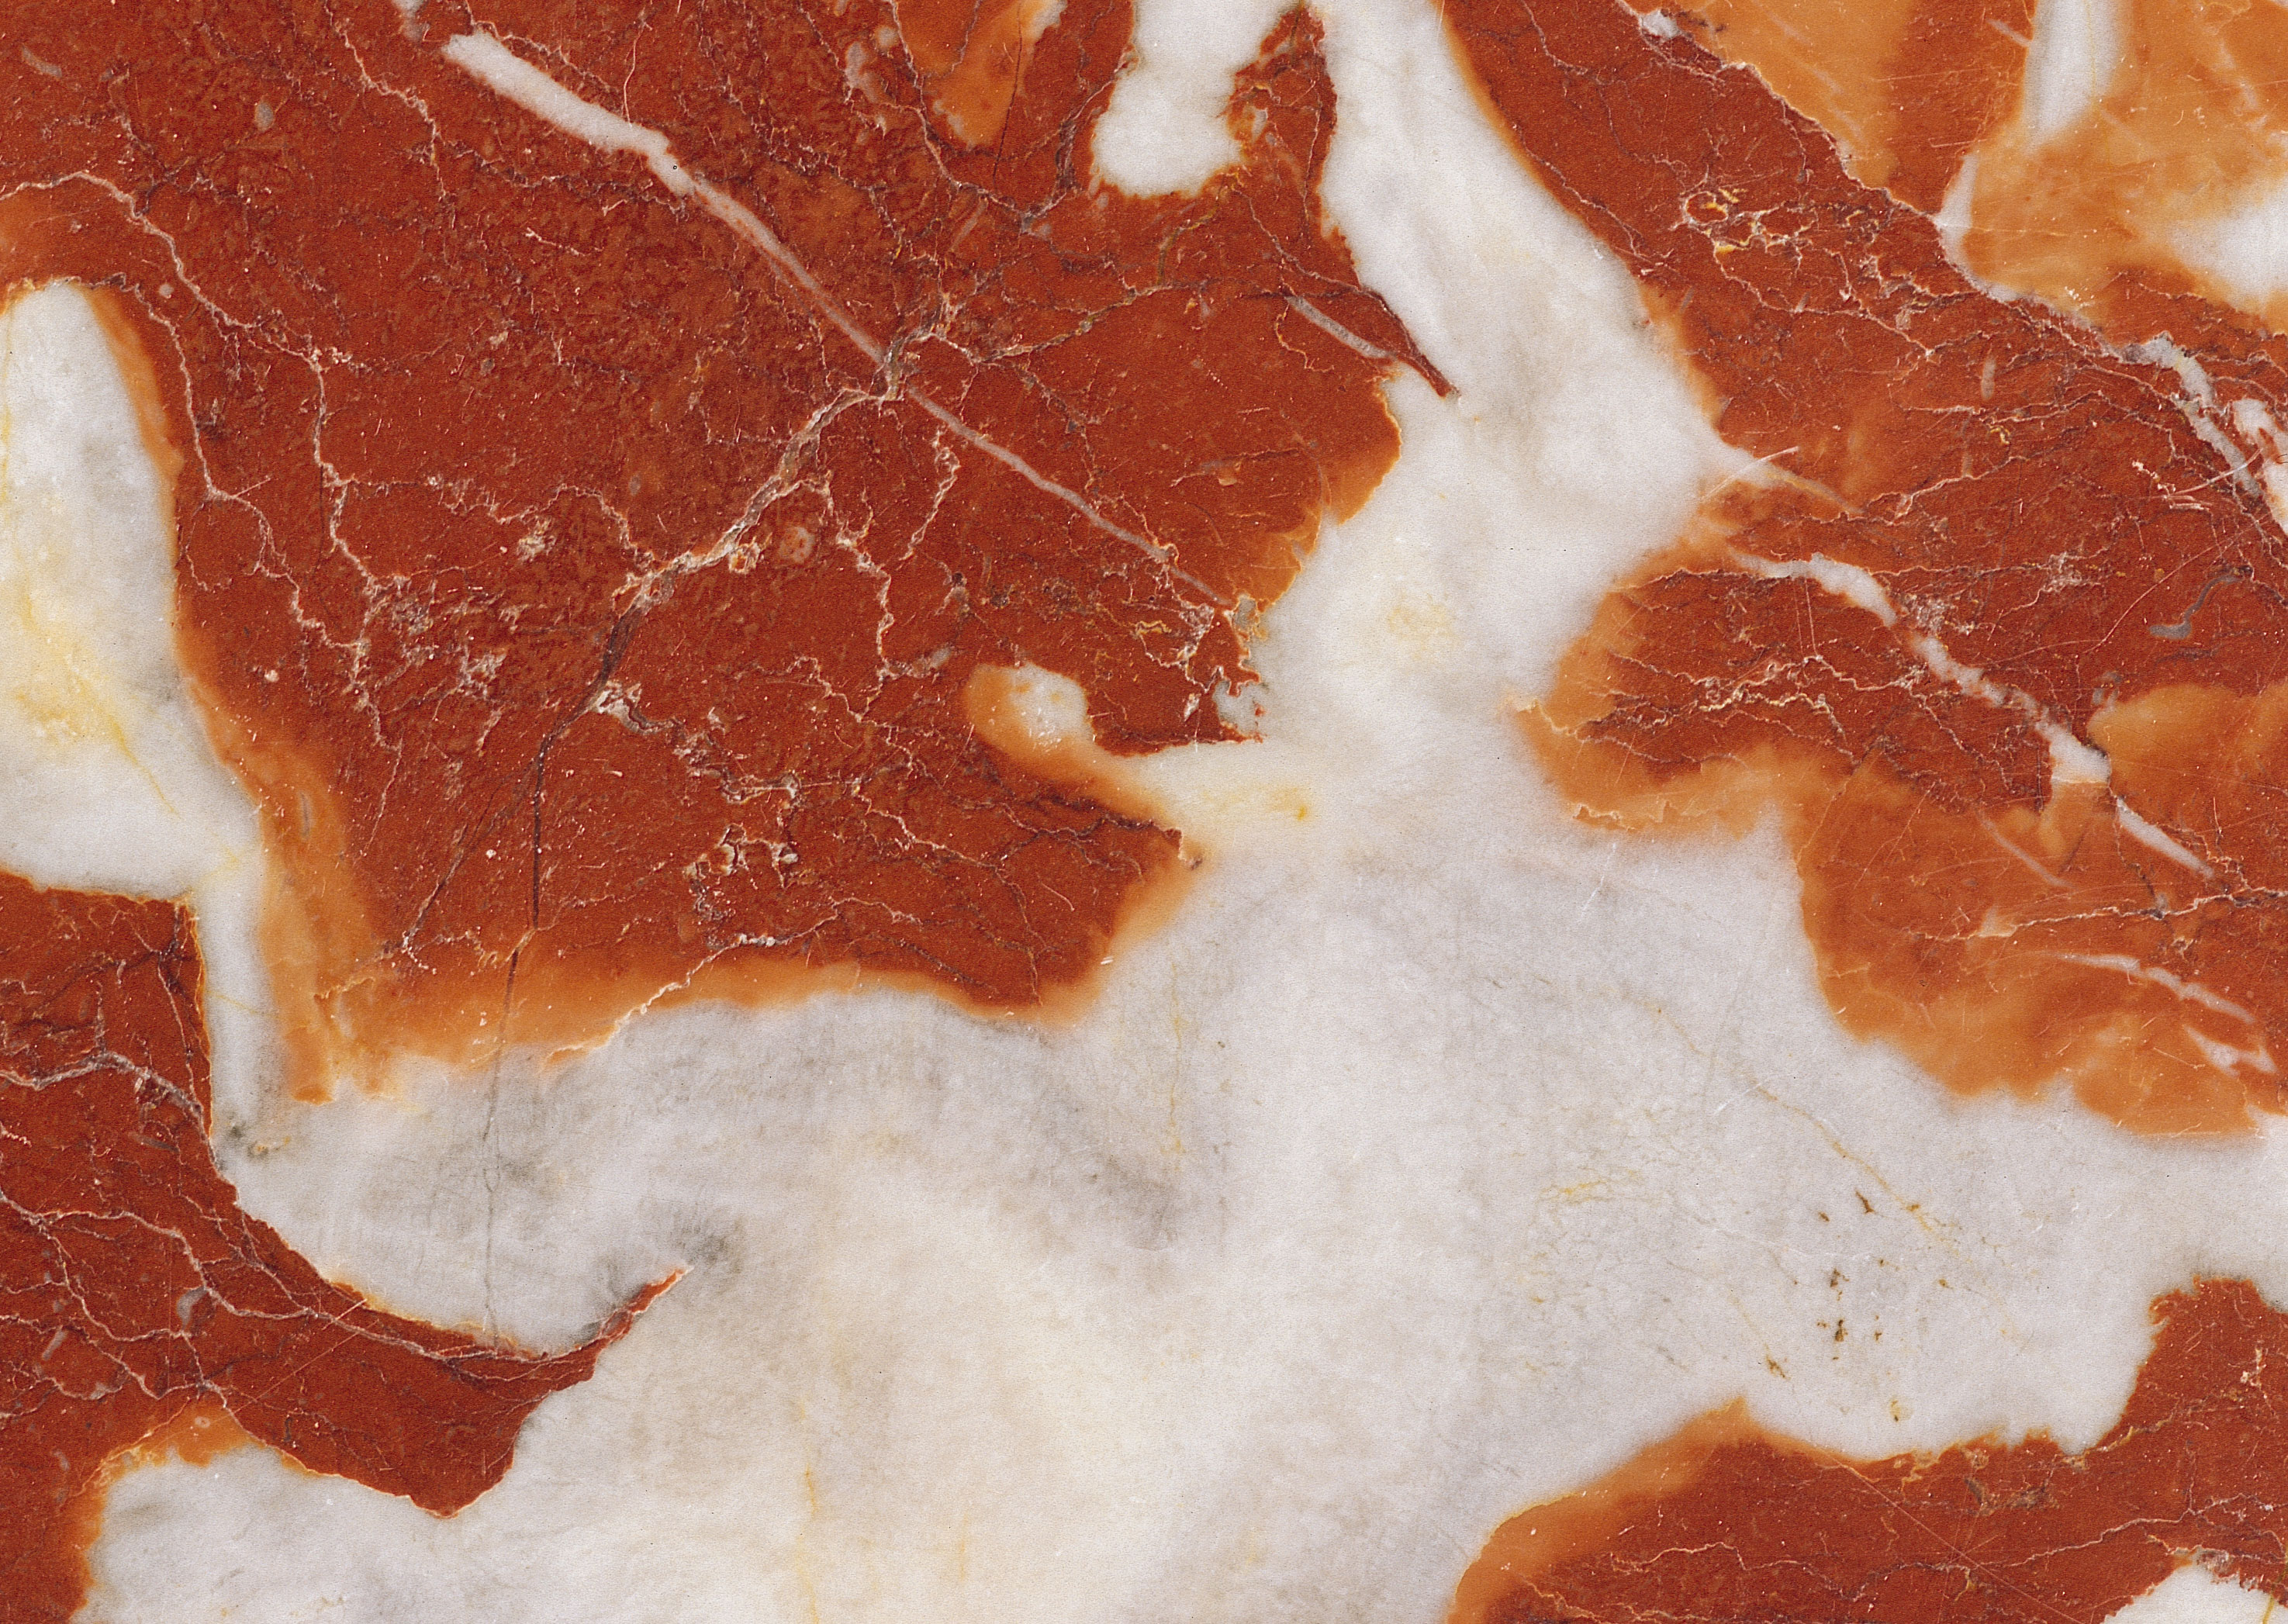 orange marble texture, background marble image